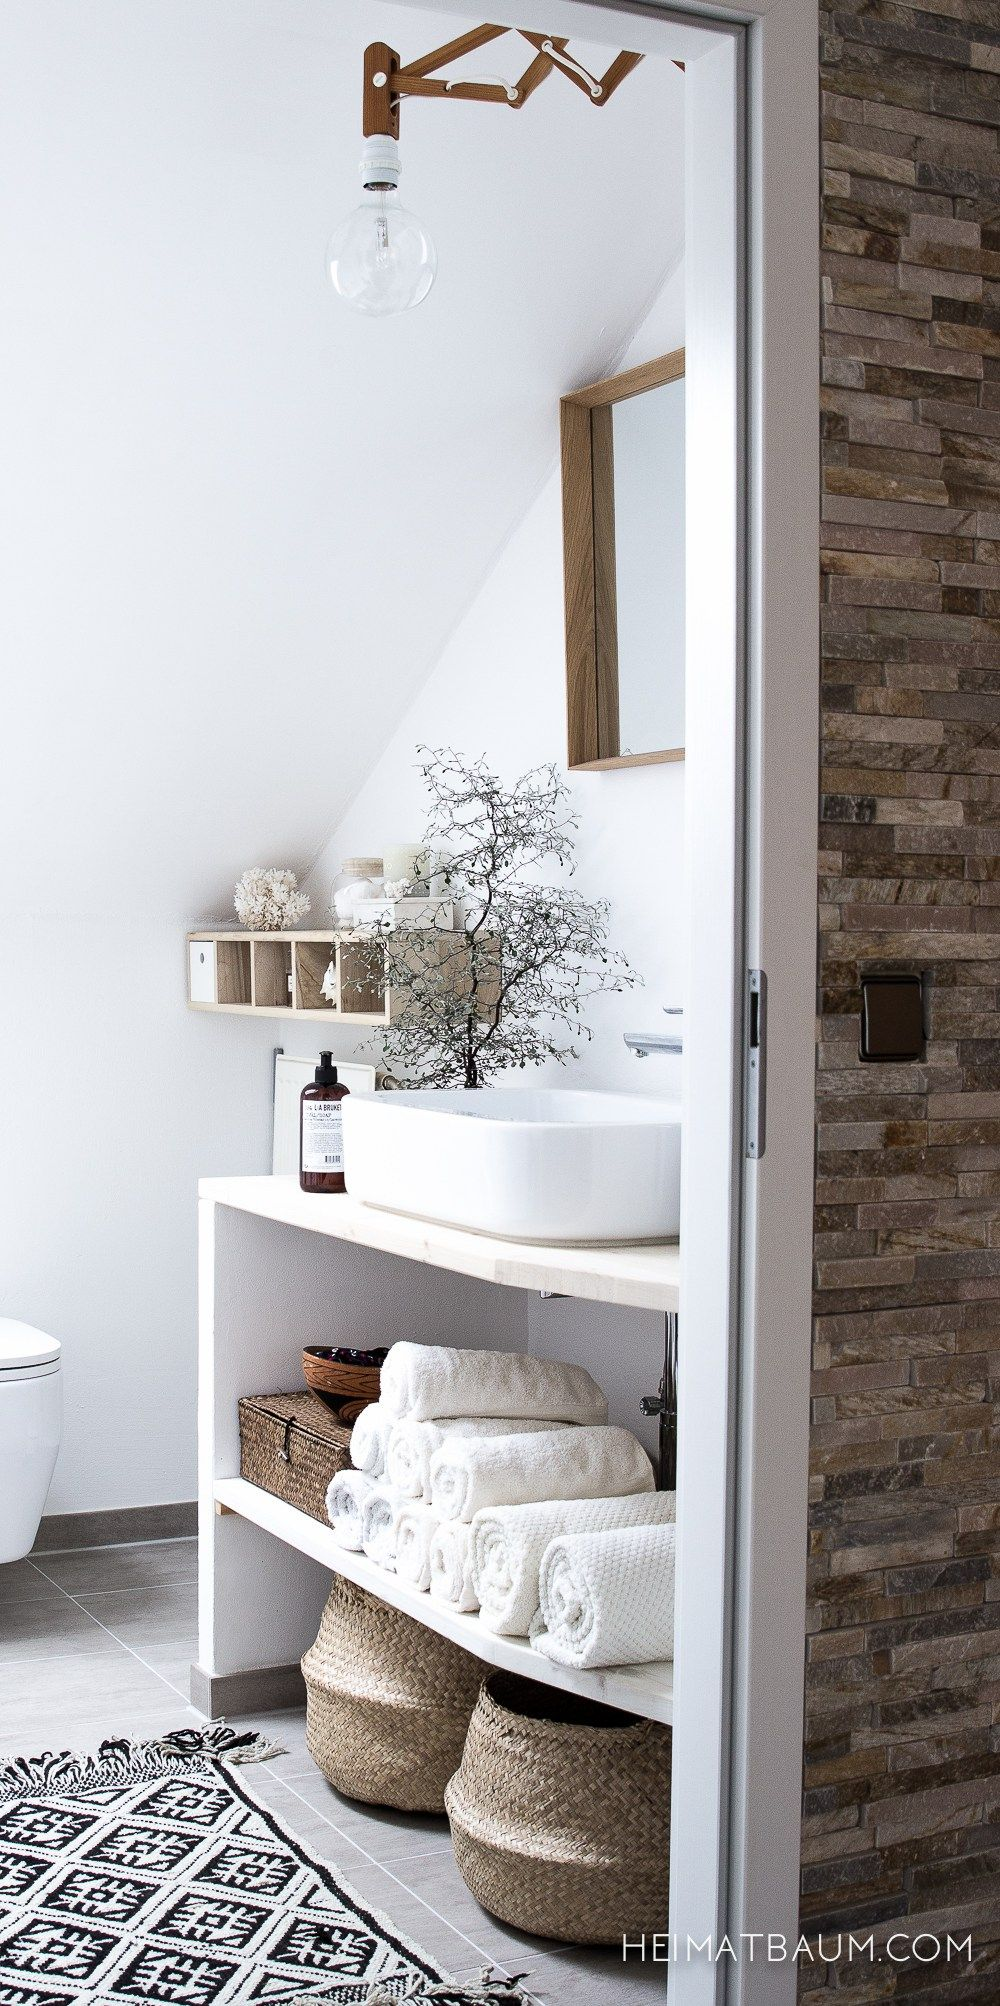 badezimmer {alles neu} (heimatbaum) | sinks, towels and shelves, Badezimmer ideen